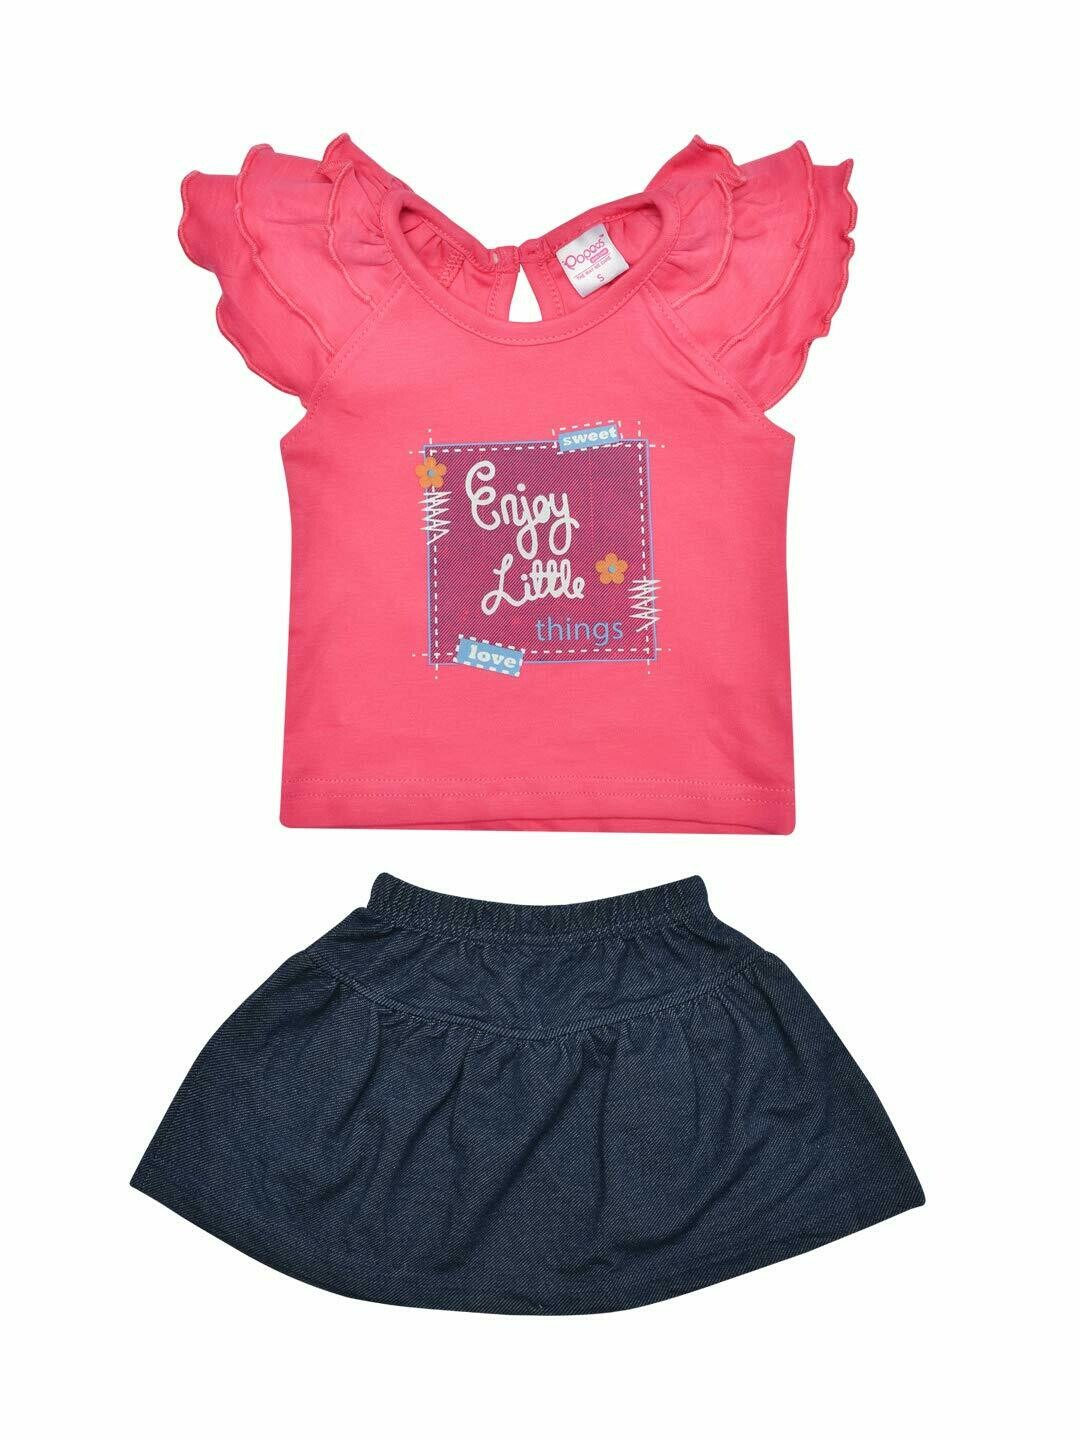 Things Baby Girl's Fuchsia Cap Sleeve Top with Skirt